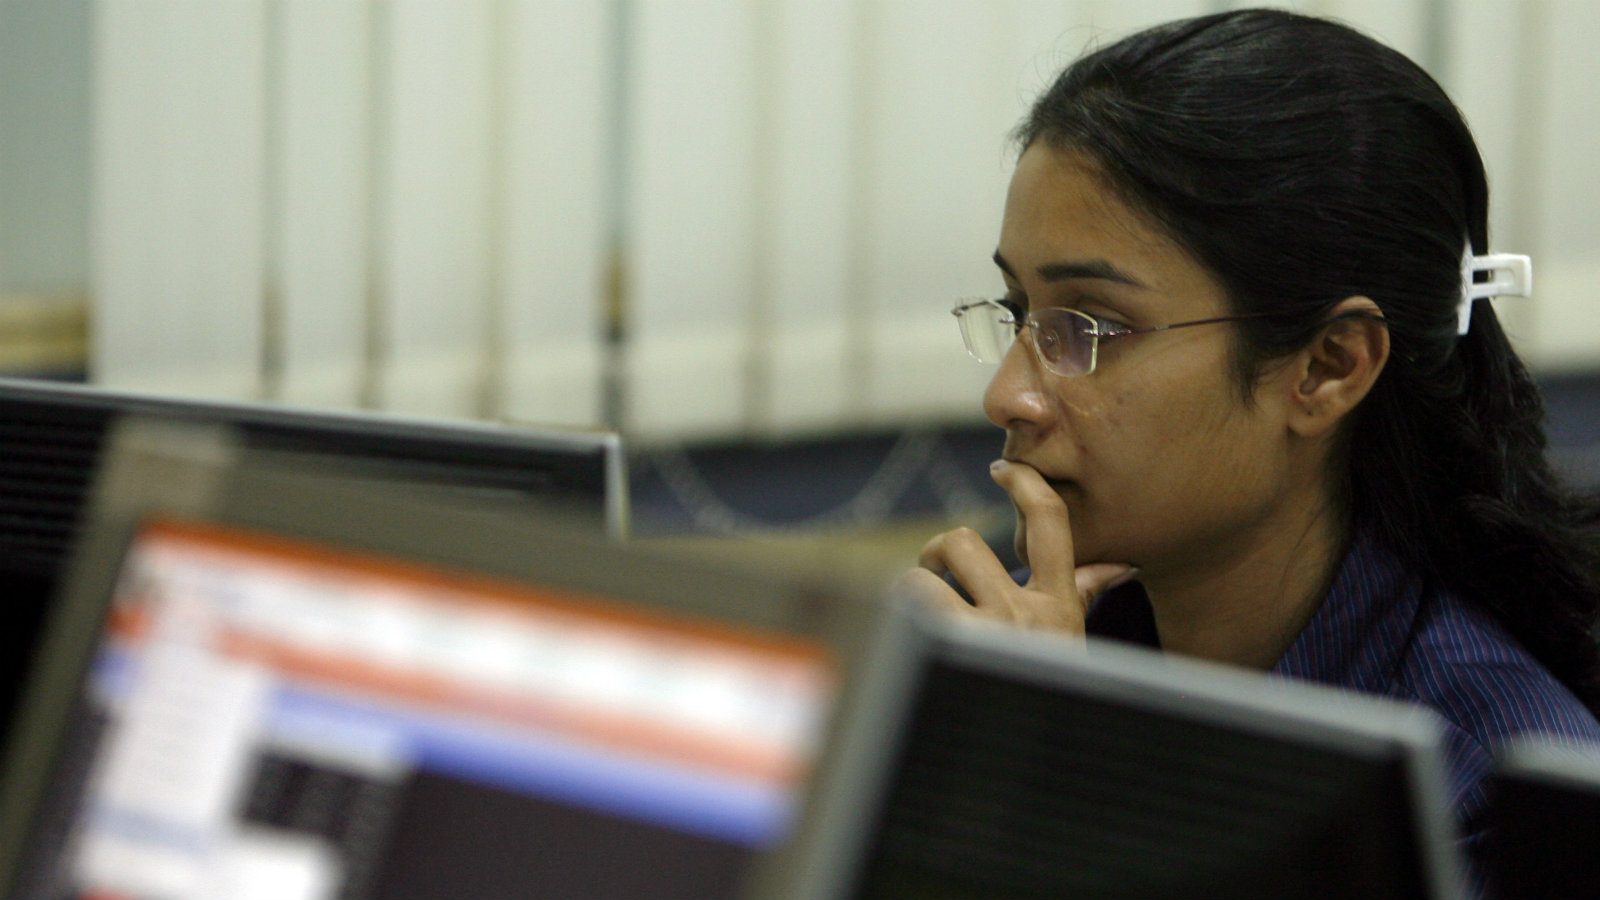 A broker looks at her computer terminal at a stock brokerage firm in Mumbai May 4, 2009. Indian shares rose more than 6 percent on Monday afternoon, taking gains to over 50 percent from a 2009 low in early March, as strong risk appetite on a brighter outlook for the global economy lifted markets across Asia.